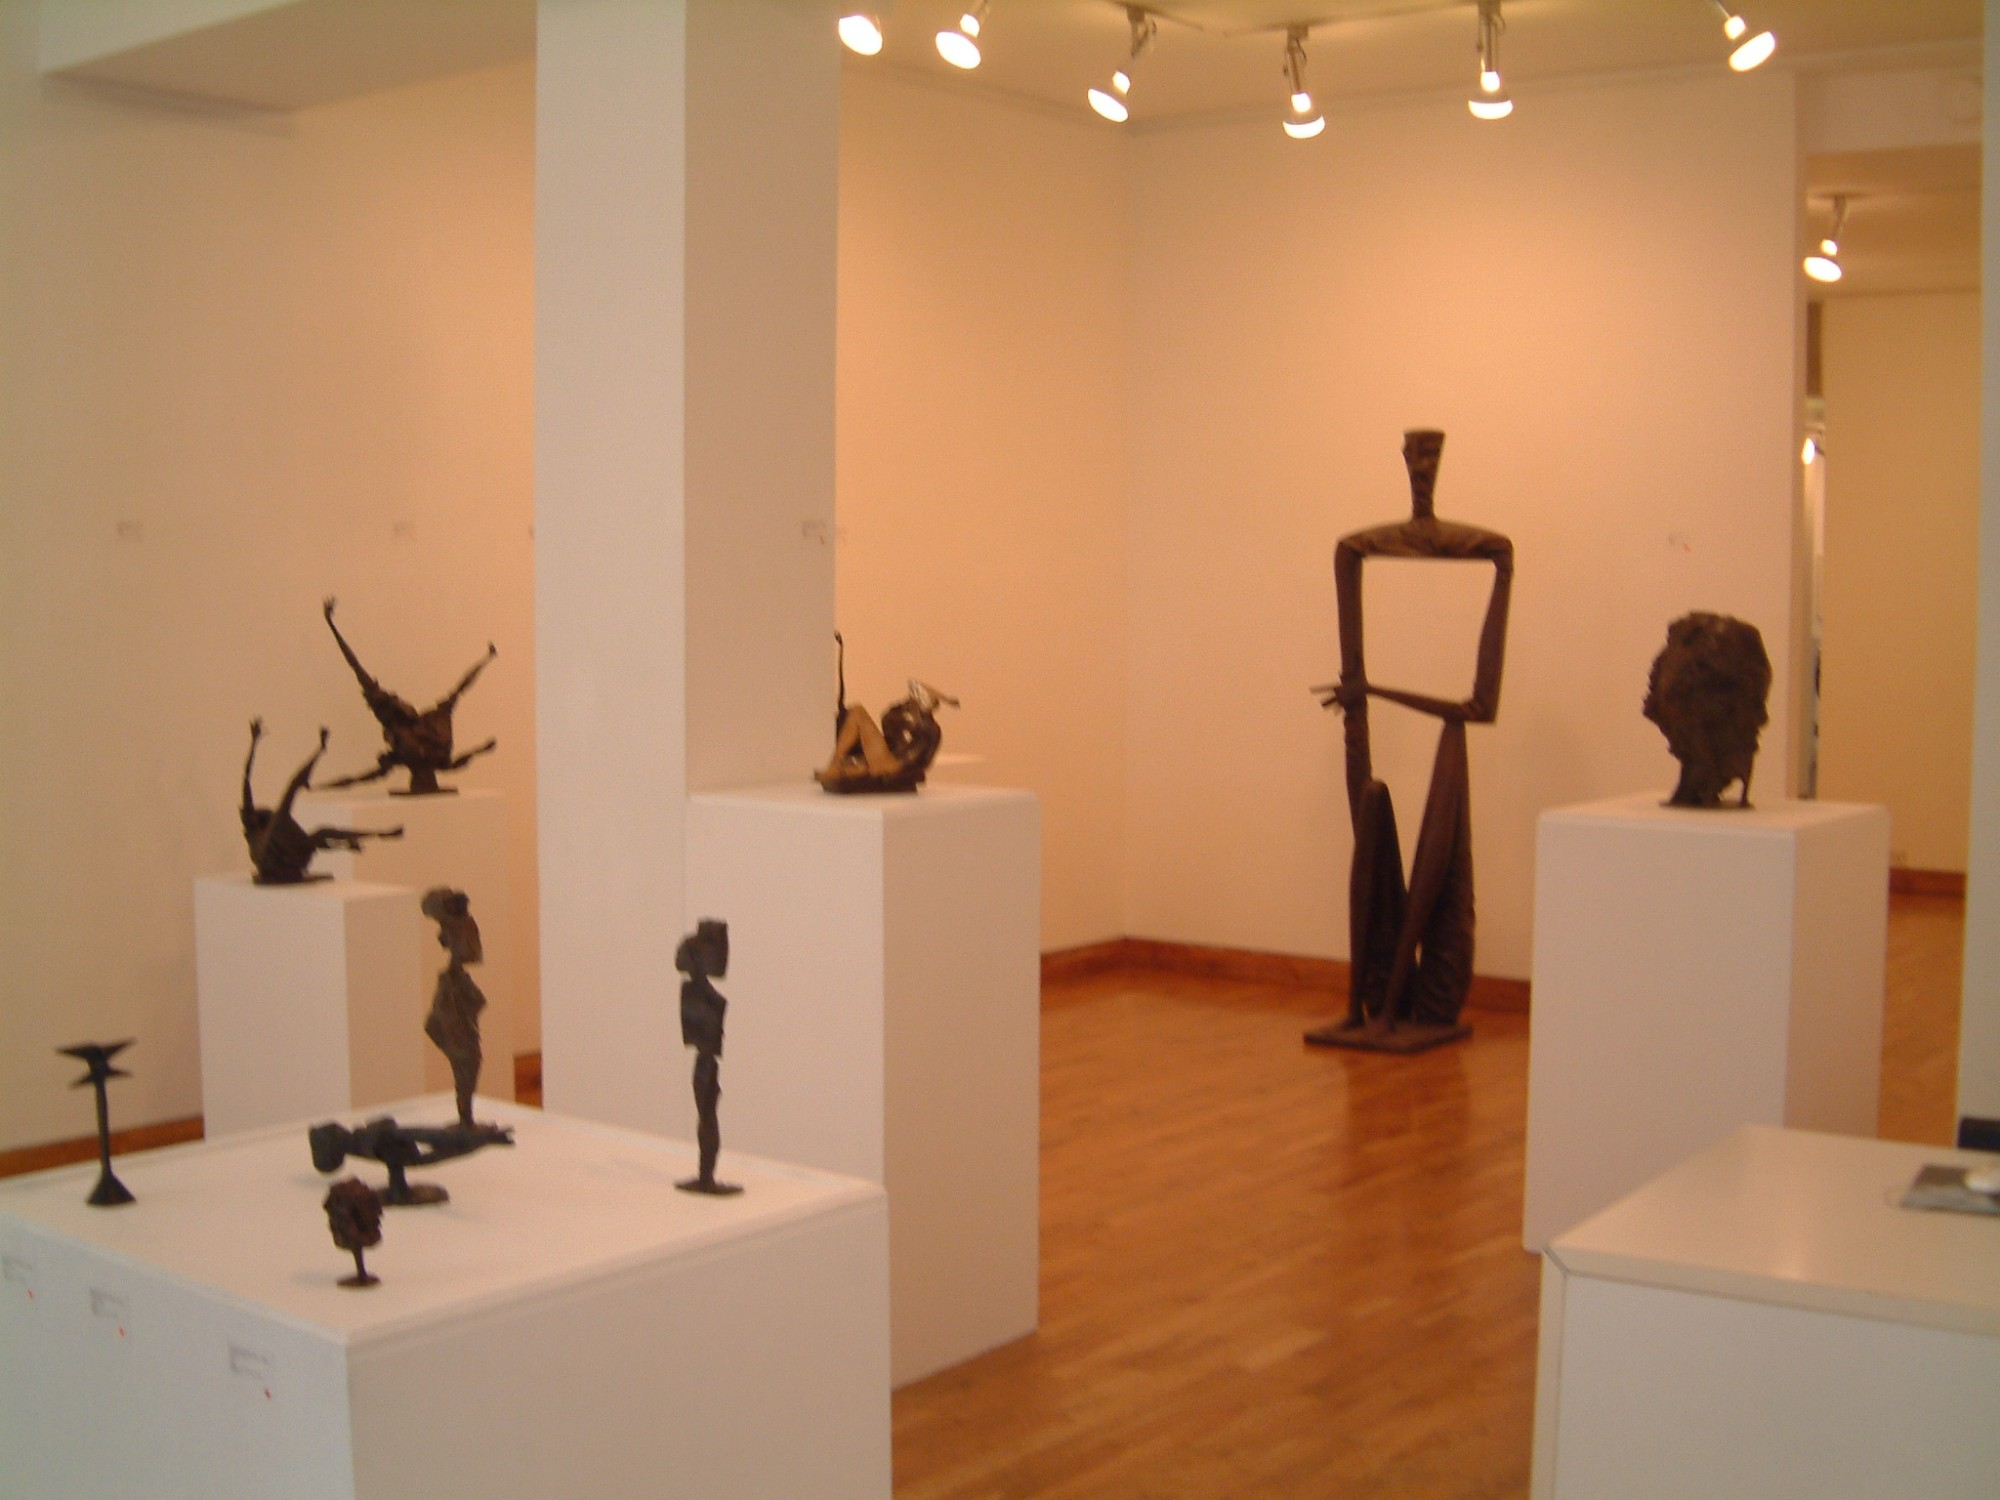 "<span class=""link fancybox-details-link""><a href=""/exhibitions/113/works/image_standalone466/"">View Detail Page</a></span><p>F. E. MCWILLIAM 